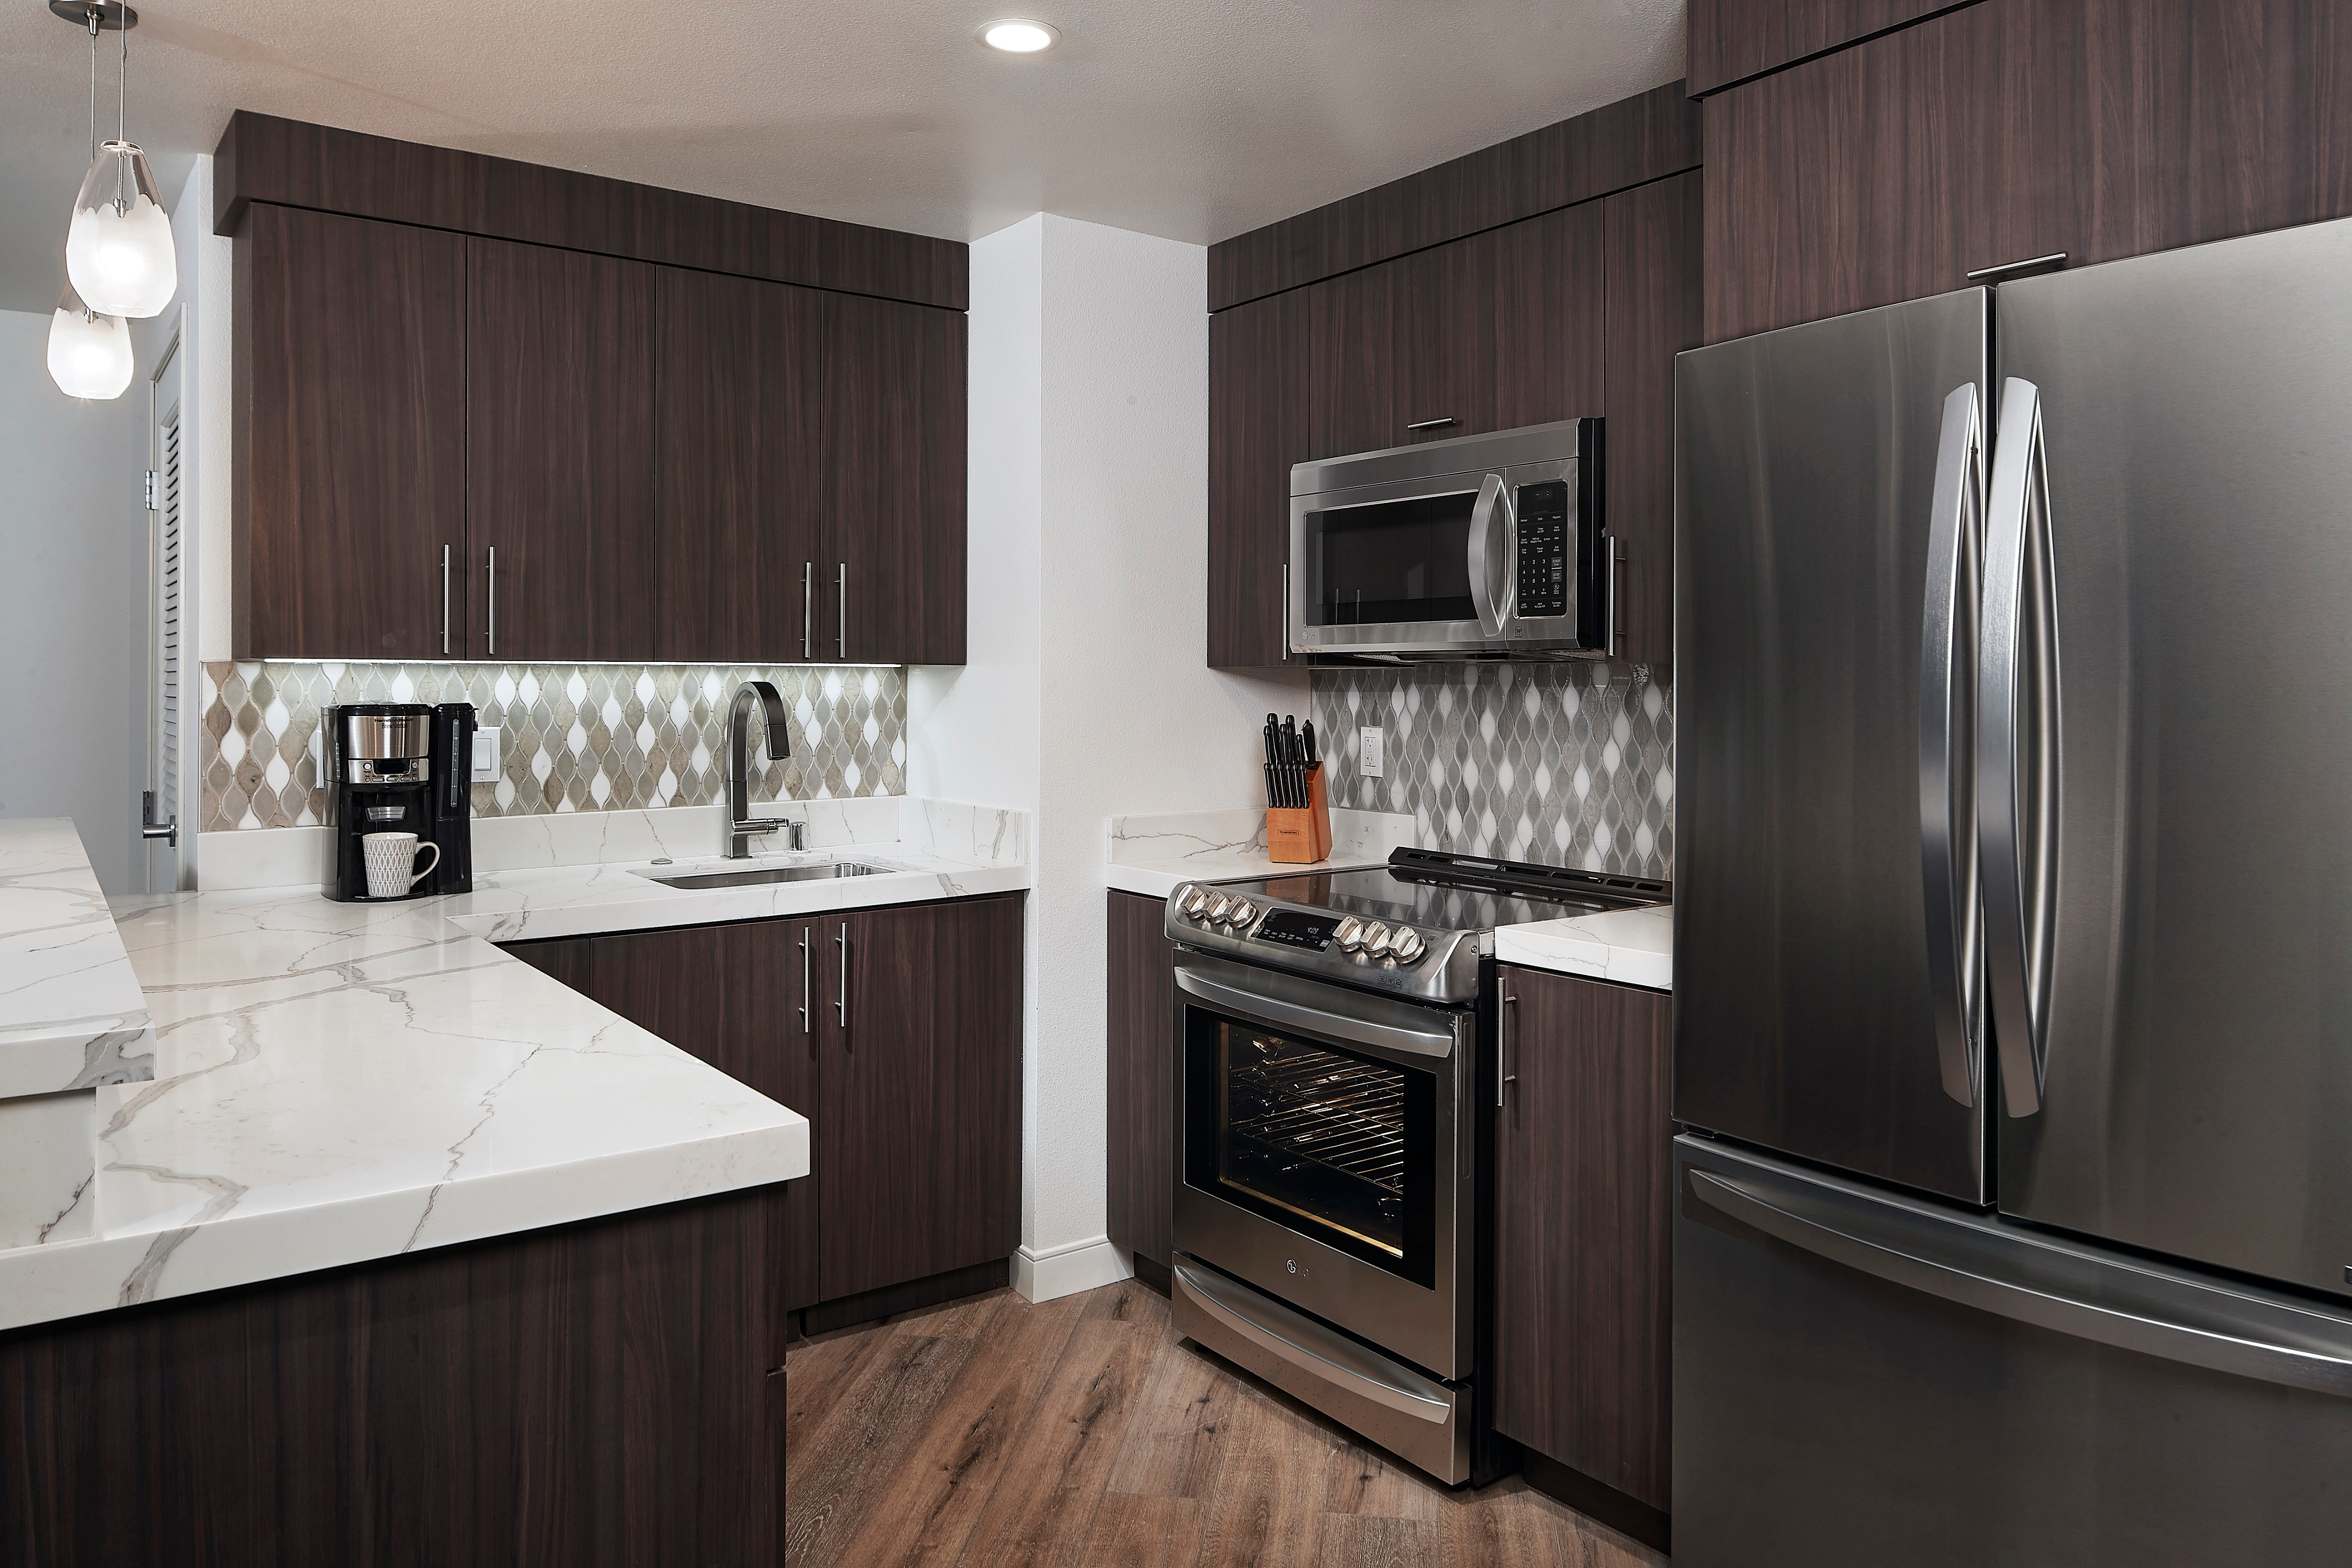 A Fully equipped kitchen in a Hilton Grand Vacations Suite.